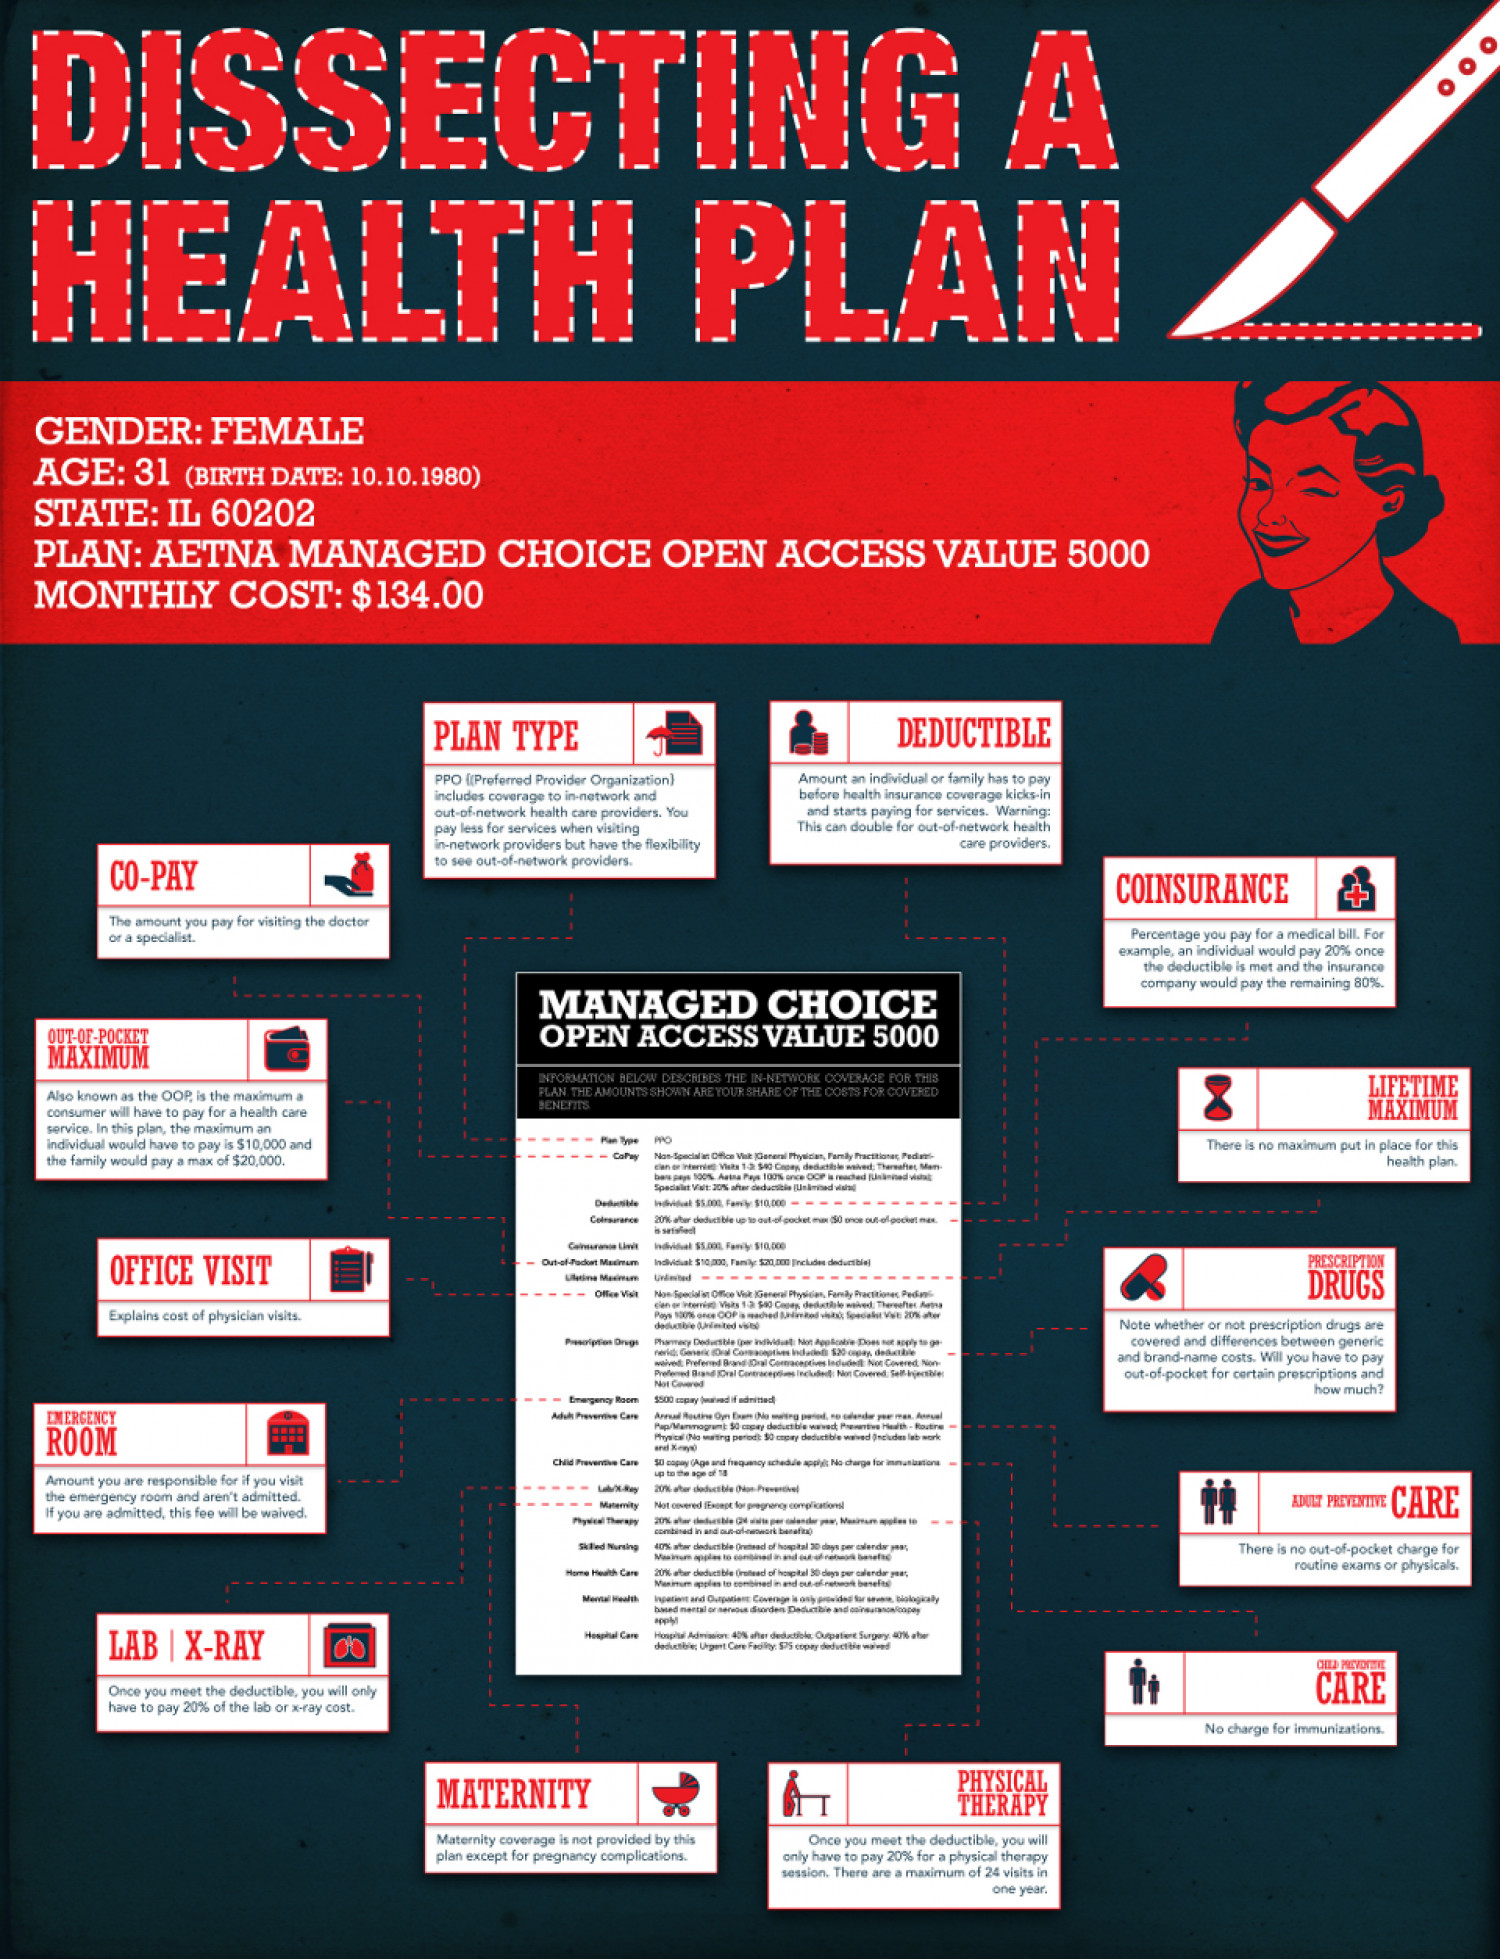 Dissecting a Health Plan Infographic